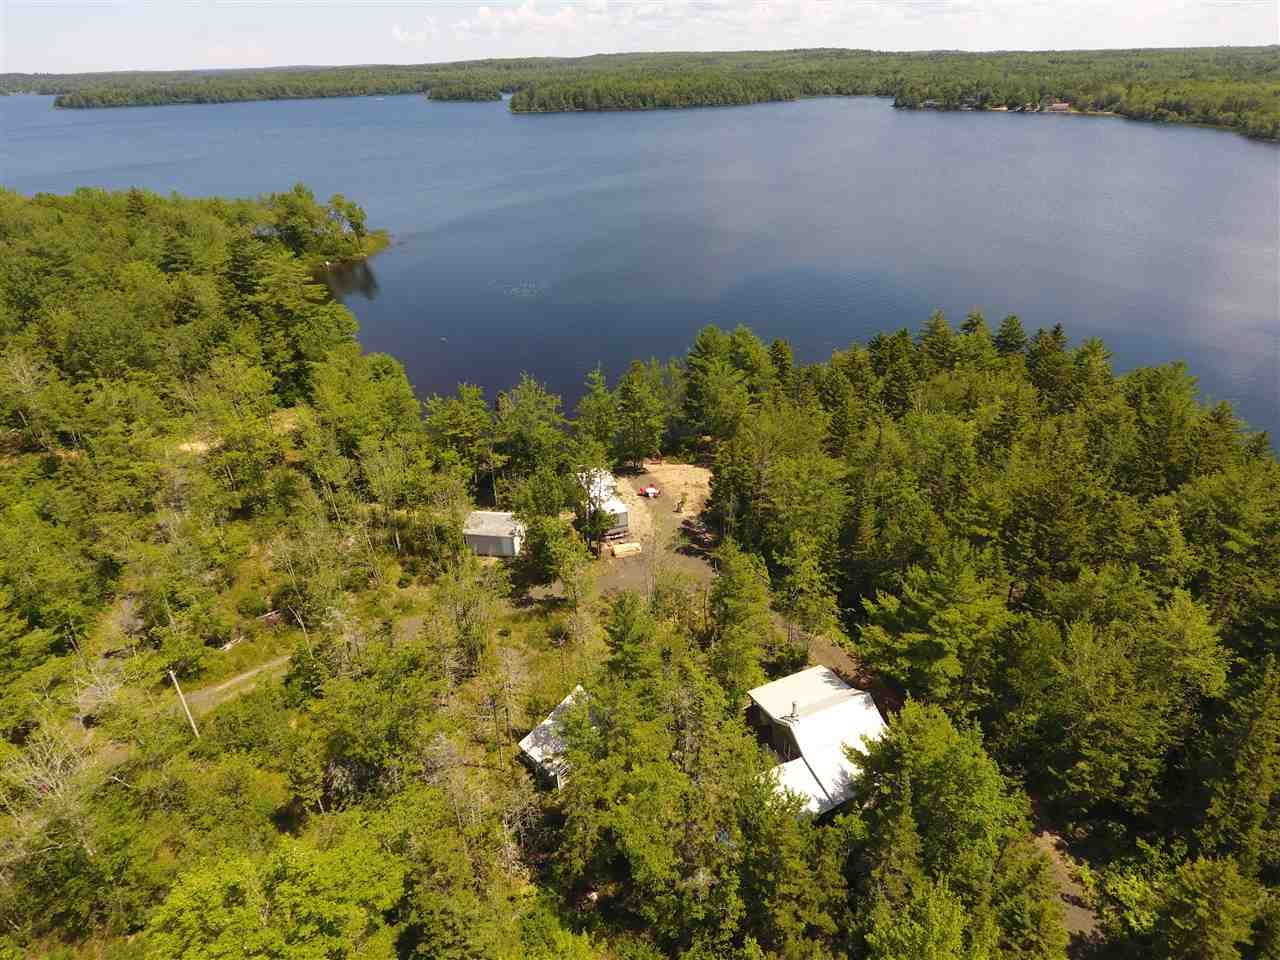 Main Photo: 65 Buckingham Drive in South Range: 401-Digby County Residential for sale (Annapolis Valley)  : MLS®# 202014136